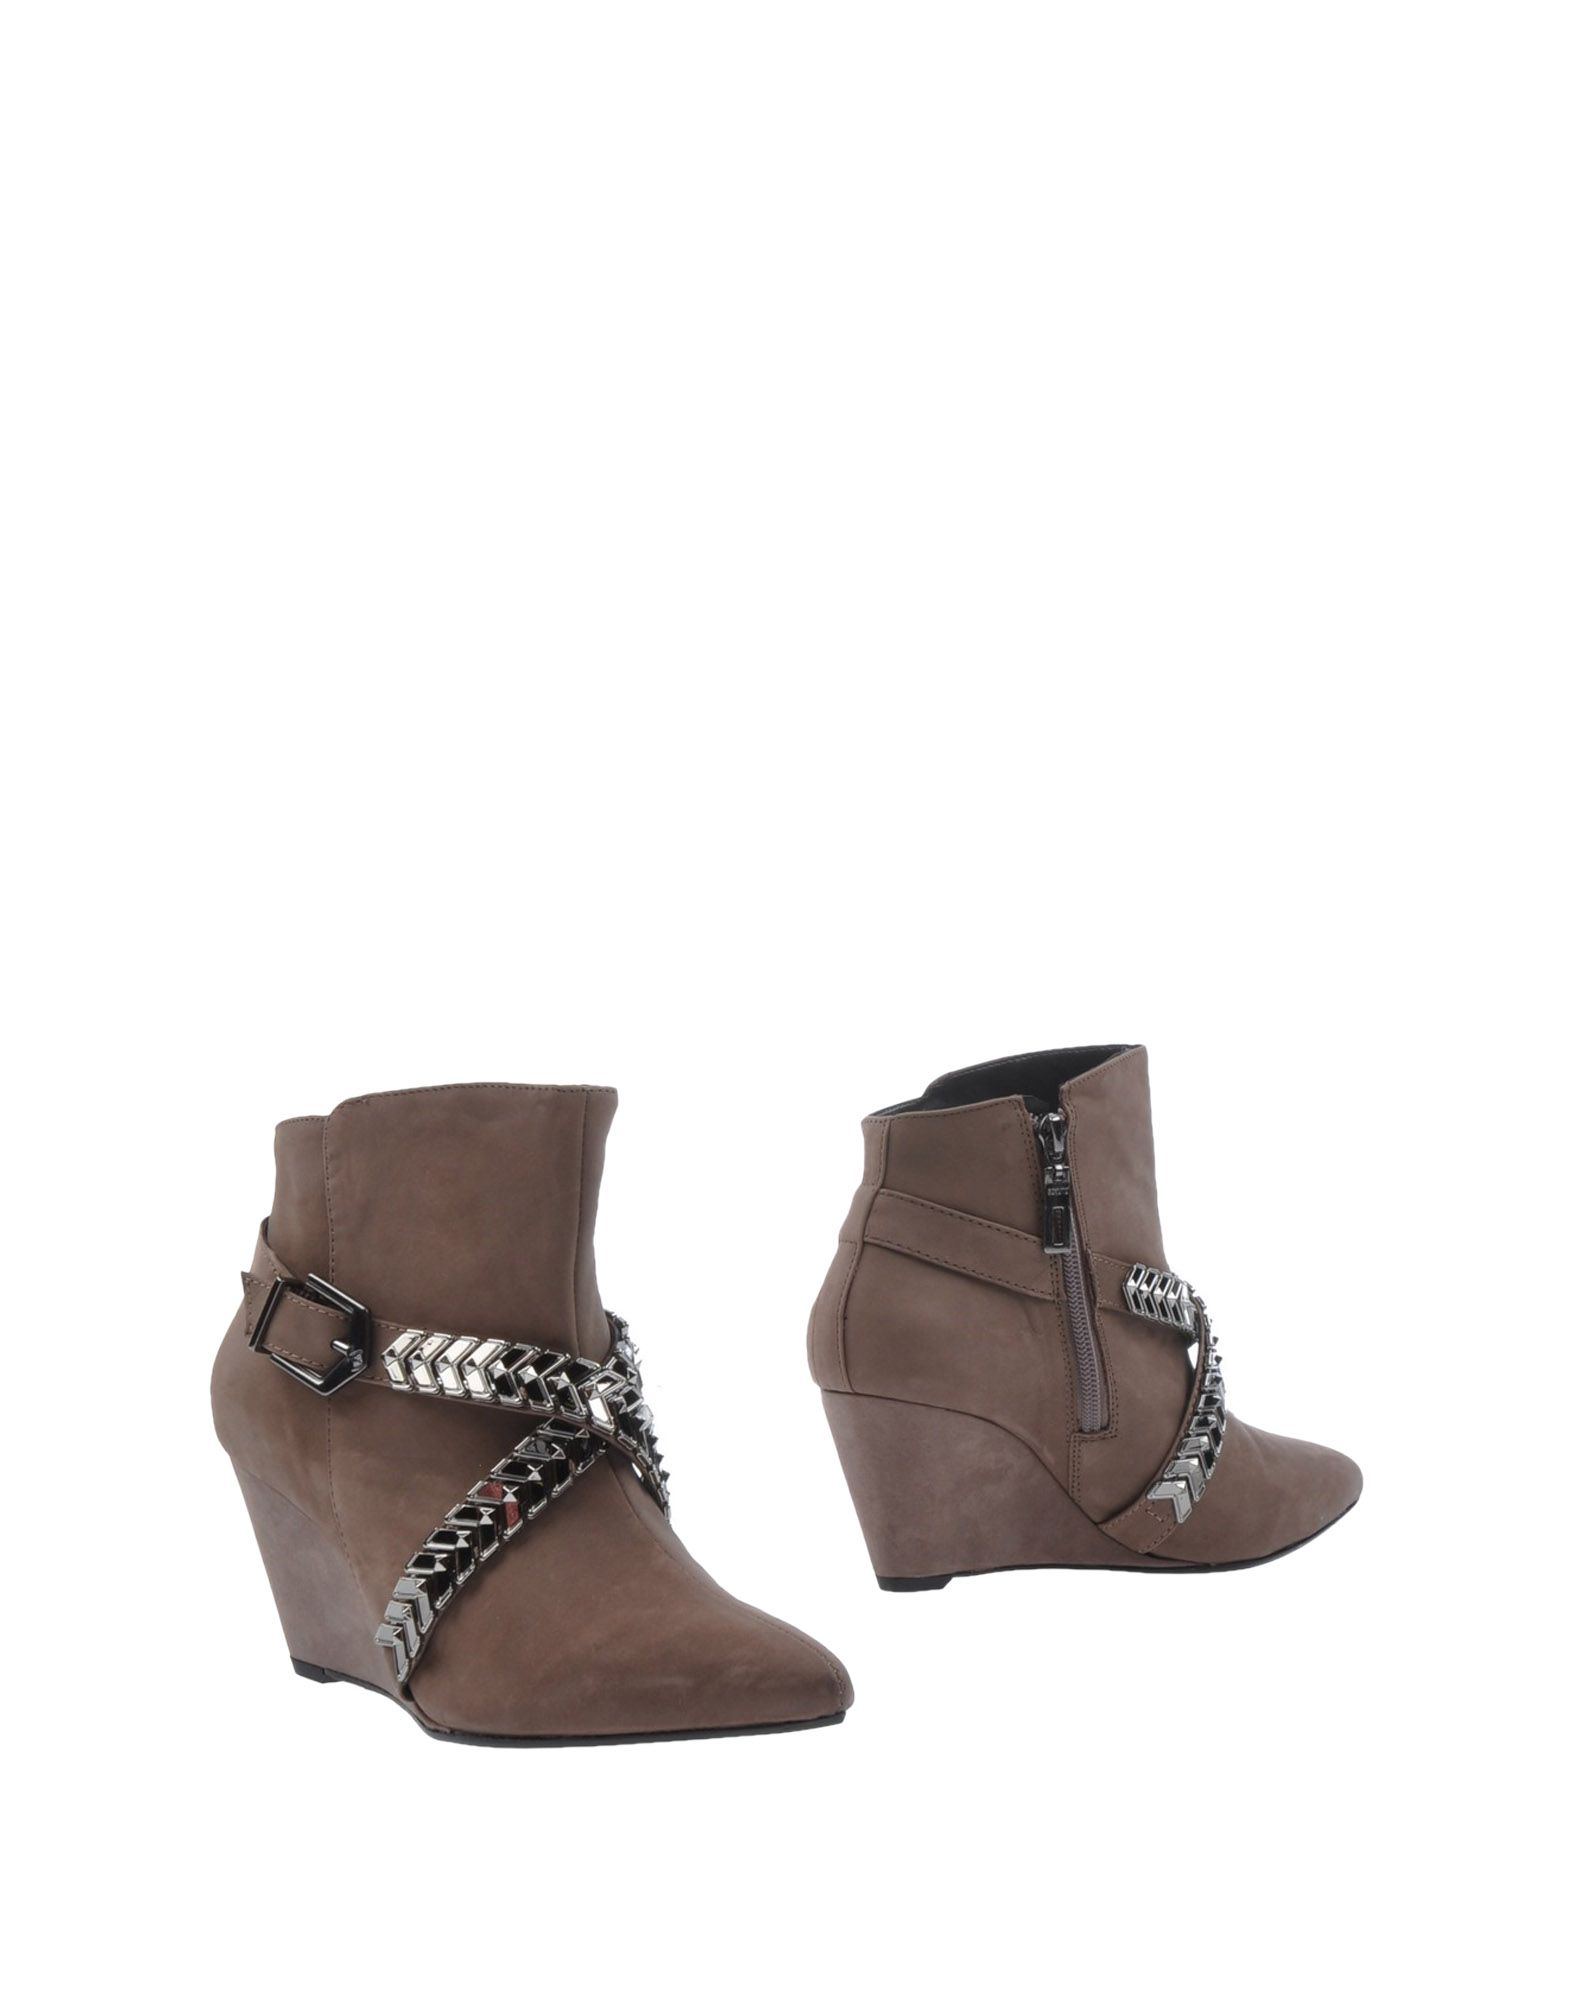 schutz ankle boots in gray lyst